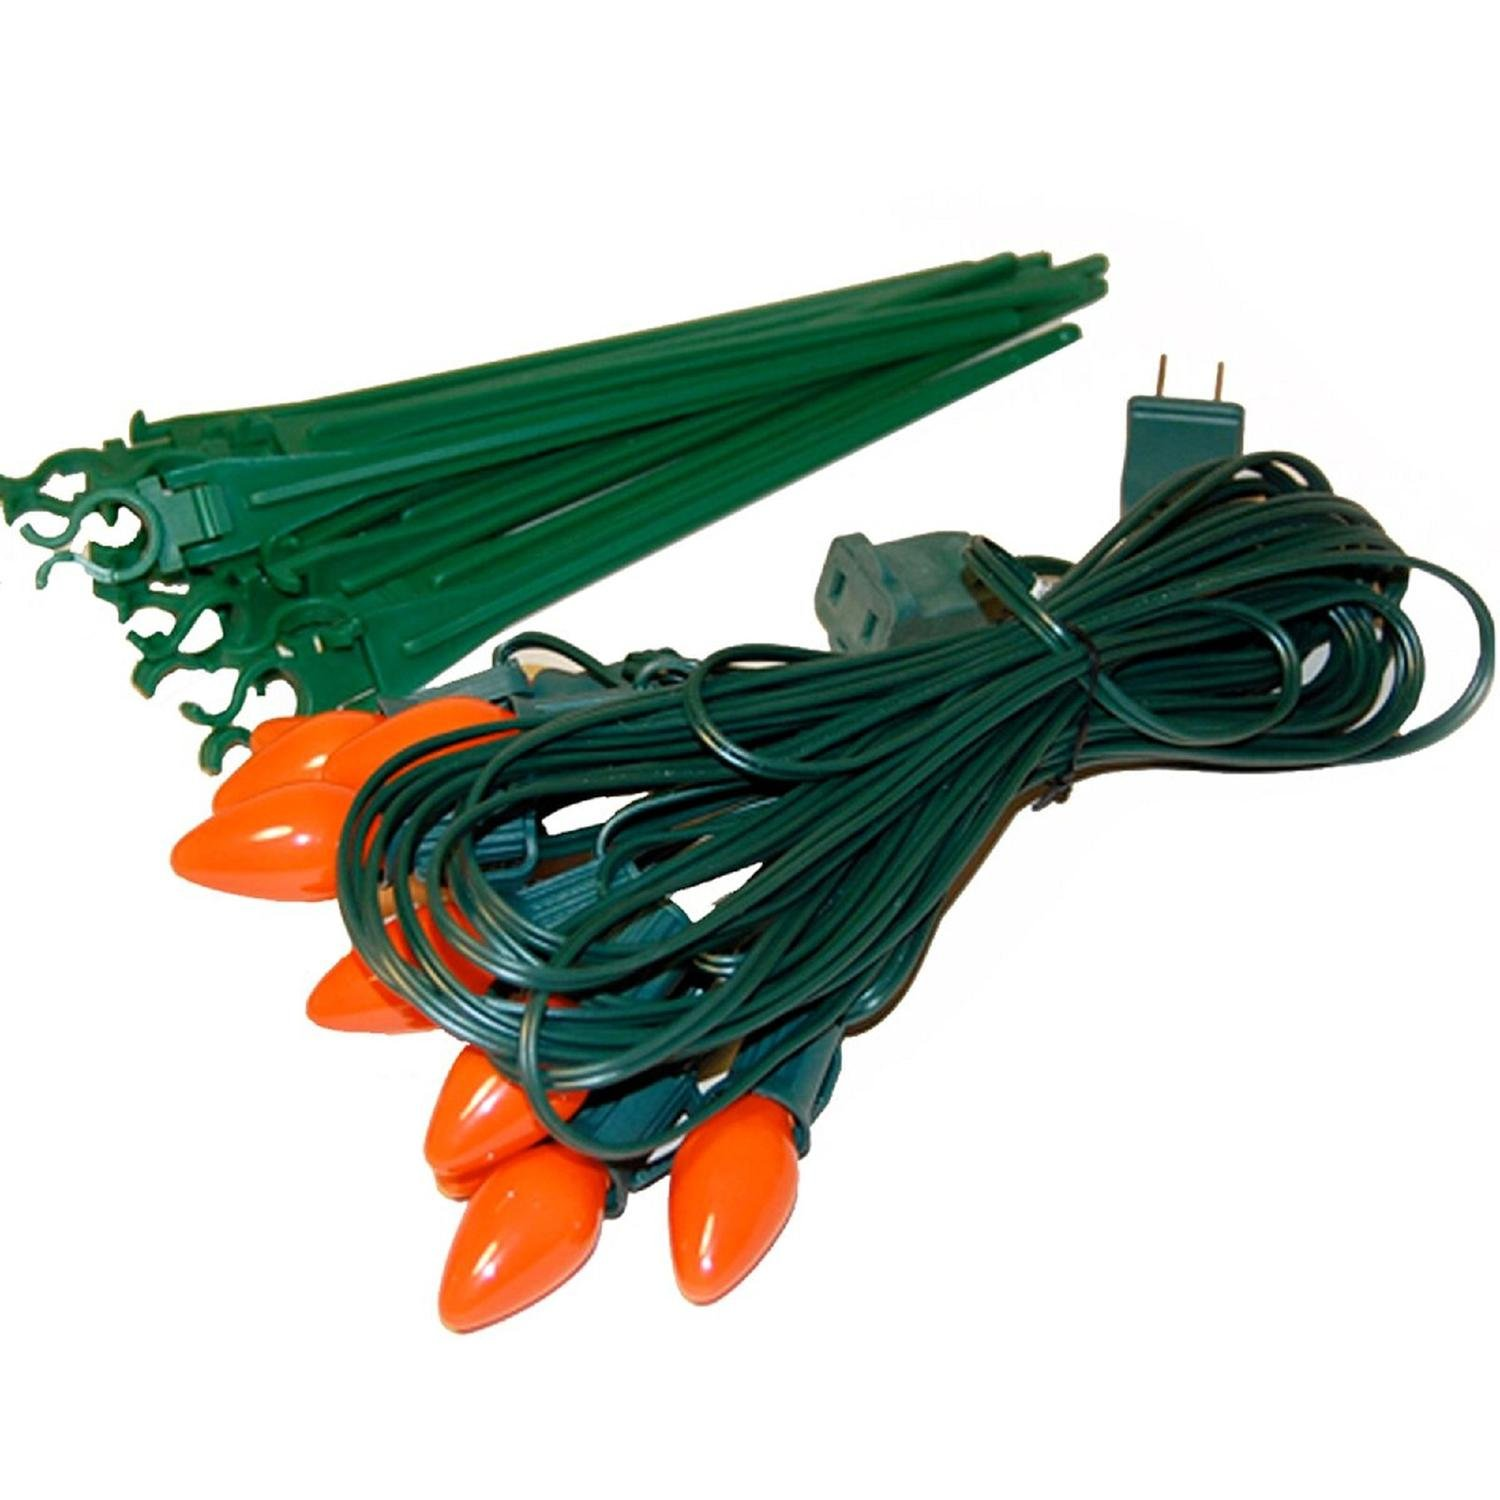 CC Home Furnishings Set of 10 Bright Orange C7 Halloween Pathway Marker Lawn Stakes - Green Wire